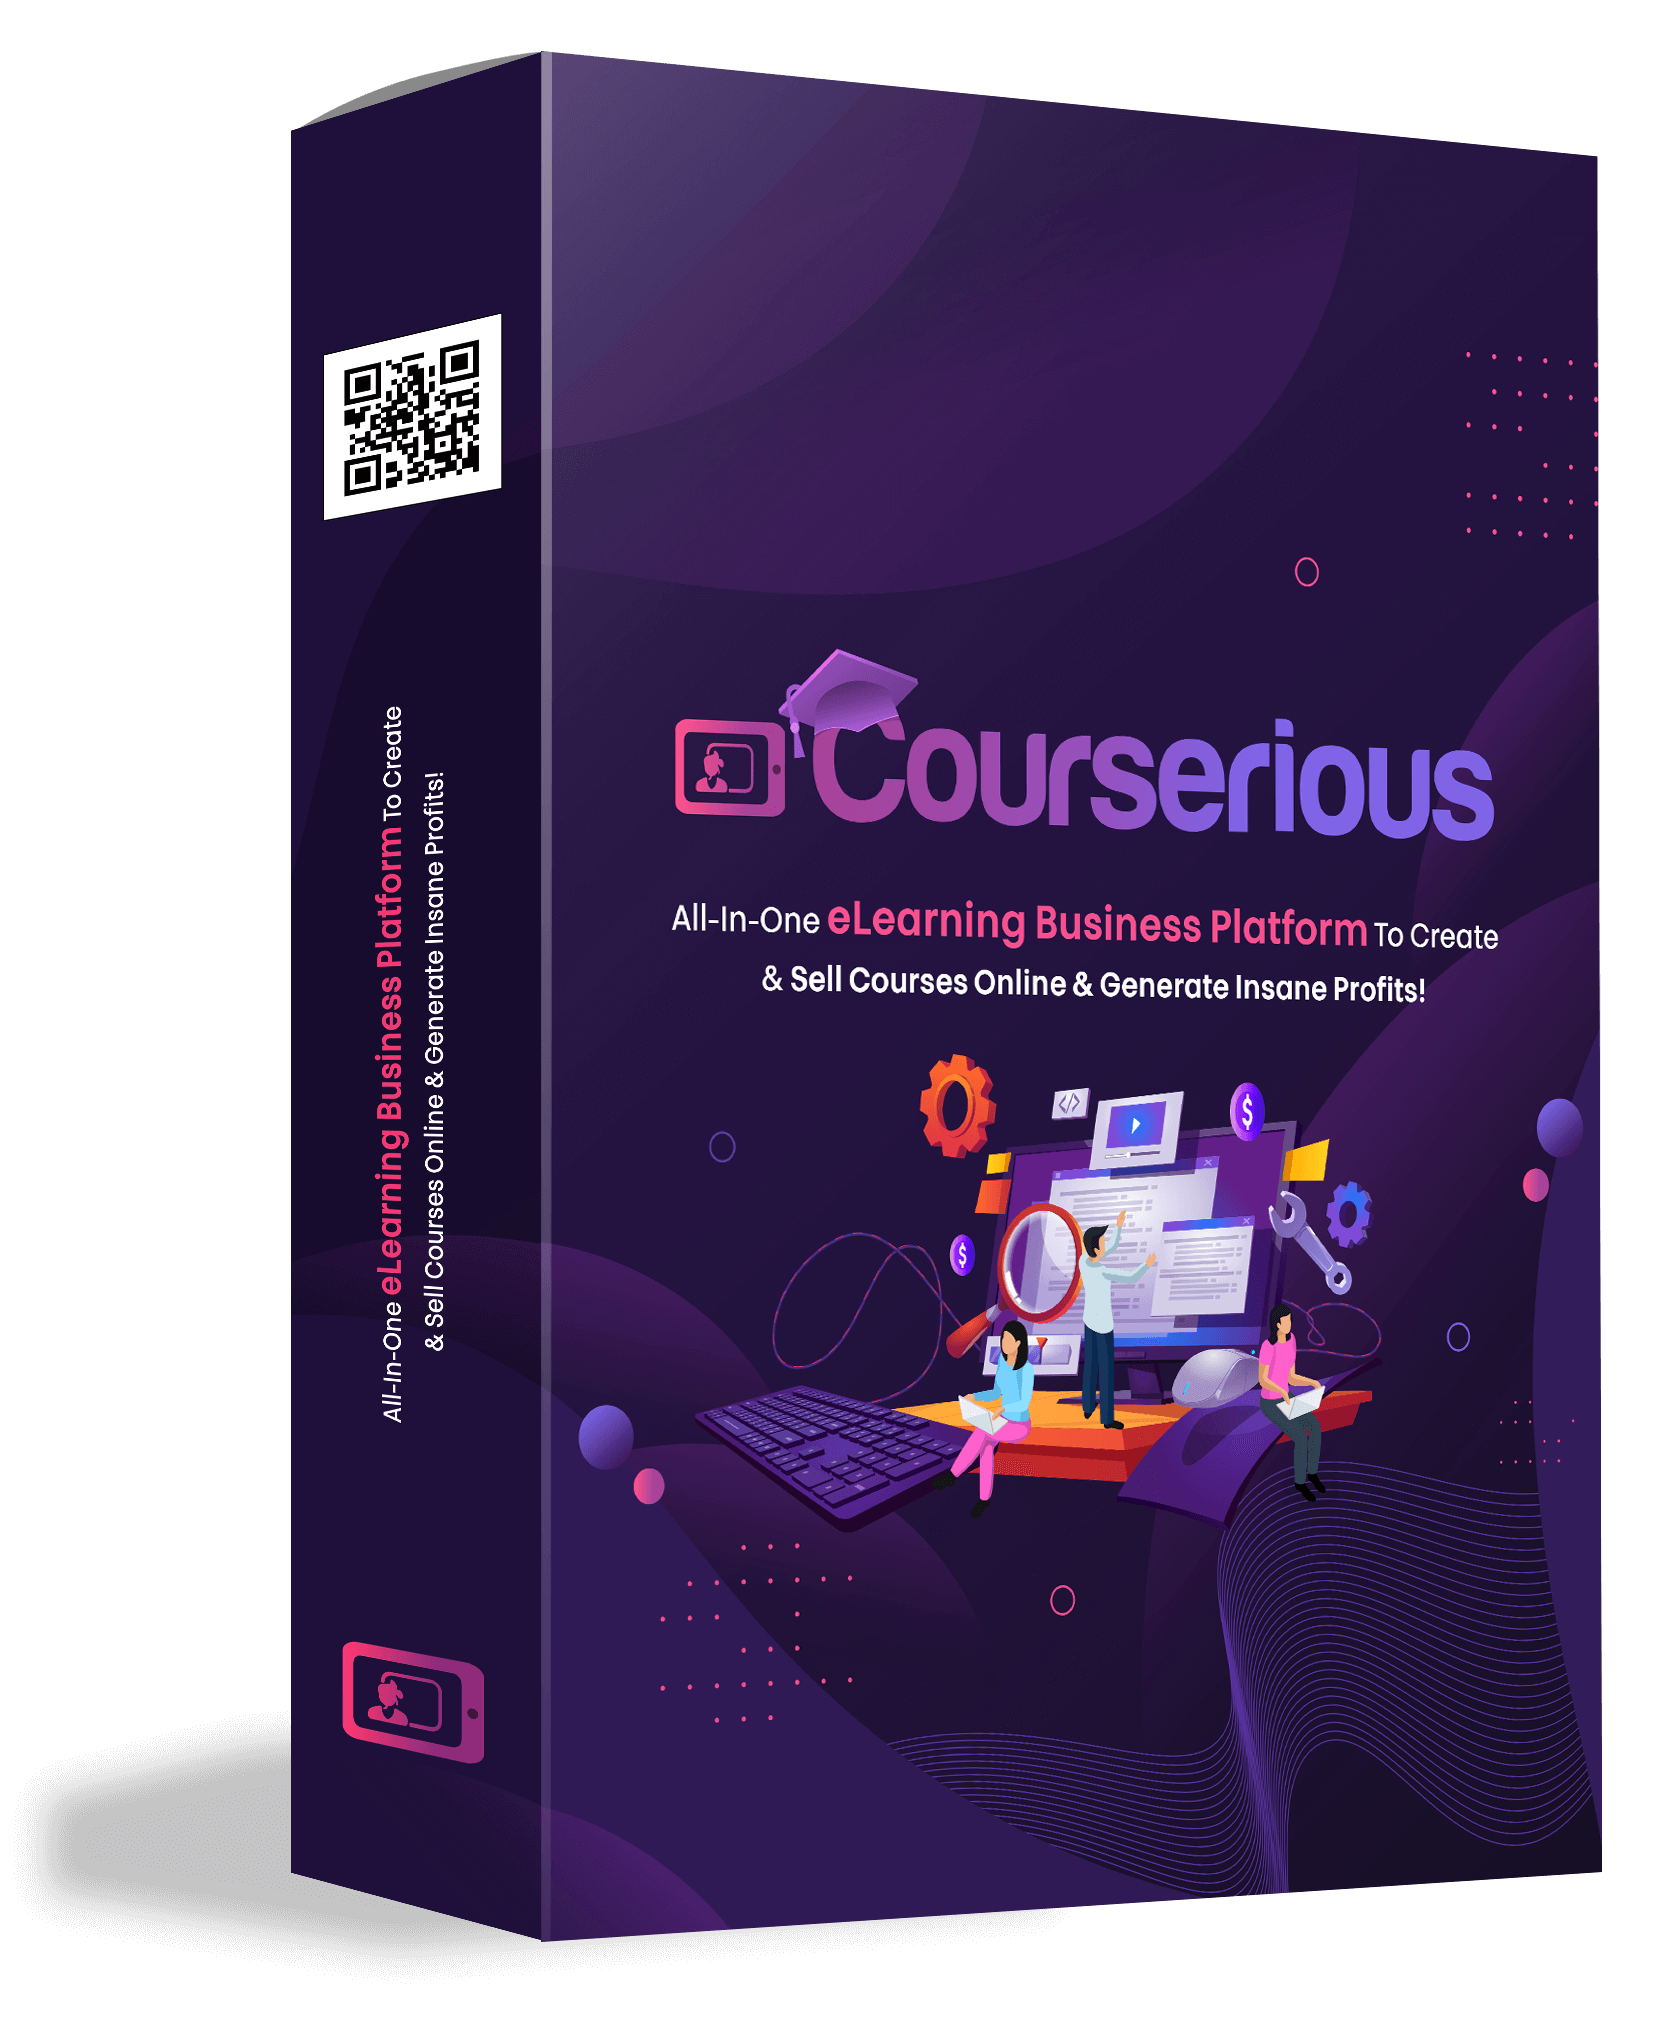 Courserious eLearning Business Course Creation 2